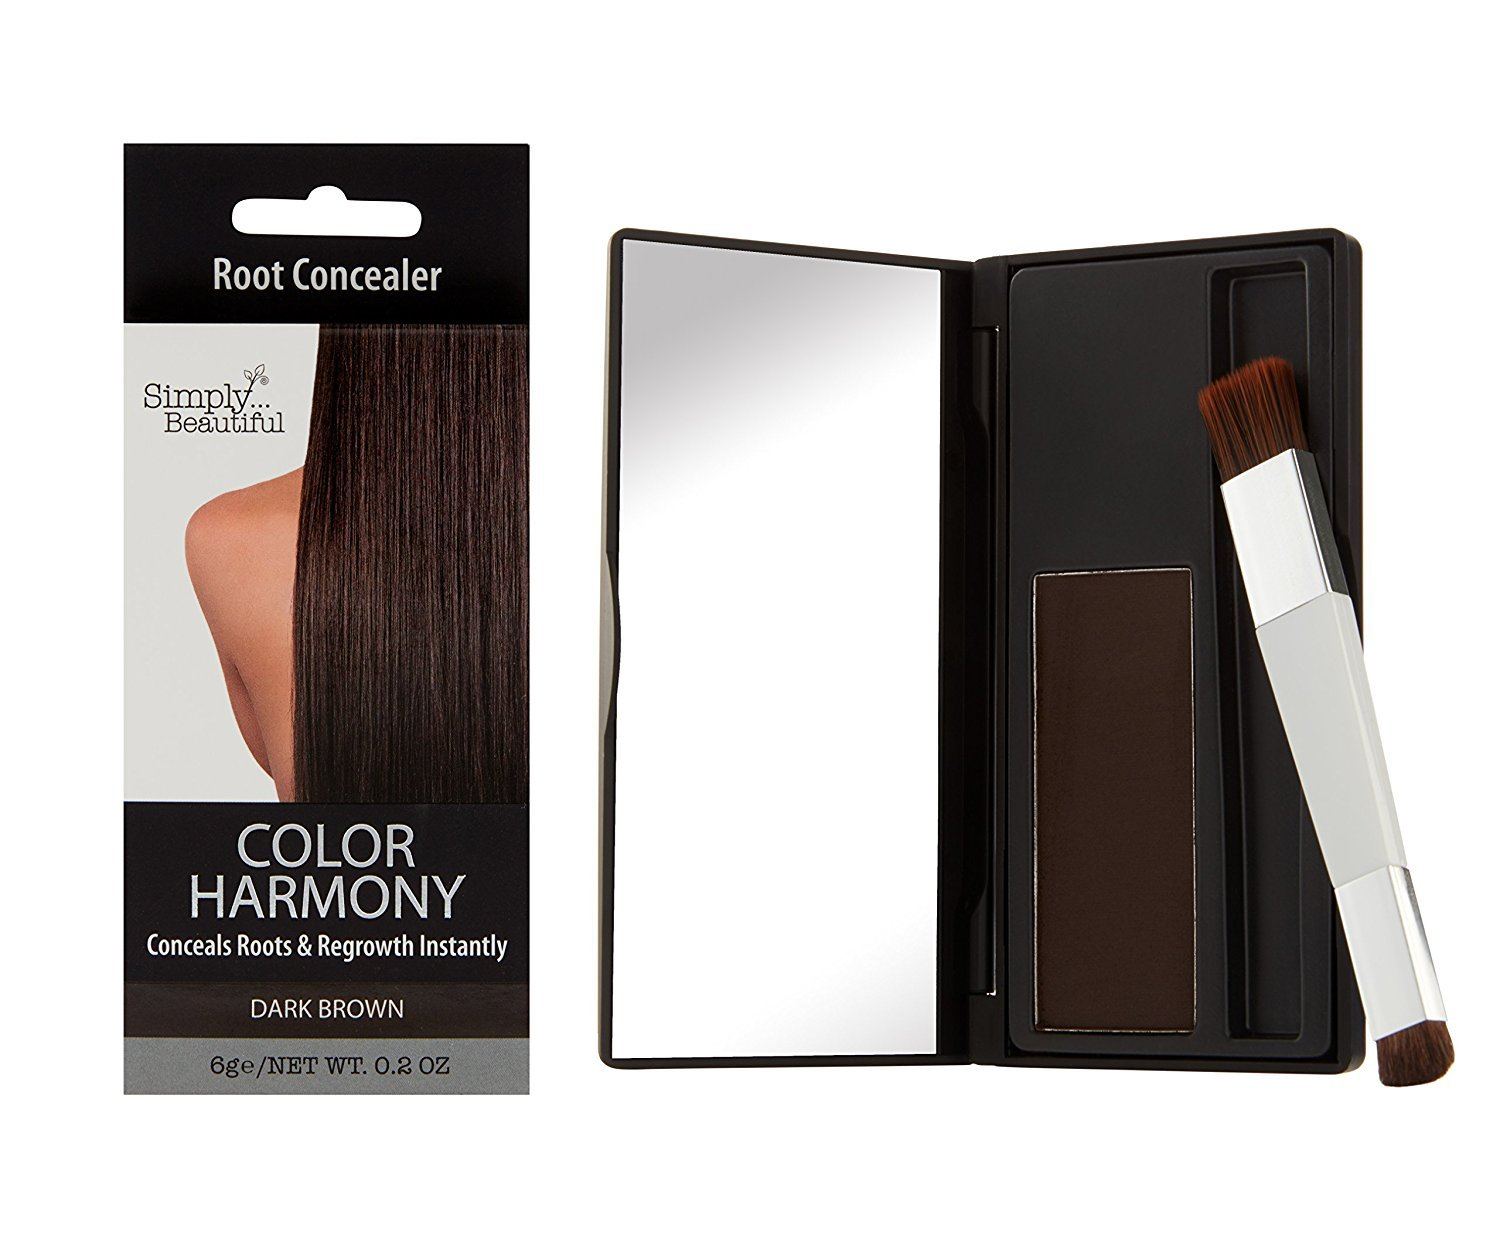 Hair Color Root Touch-Up Powder by Color Harmony: Conceals Grey and Dark Roots, Water Resistant Cover-Up; Non-Sticky, Simple To Apply and Mess-Free Root Concealer Mascara (Dark Brown) by Second Glance Beauty